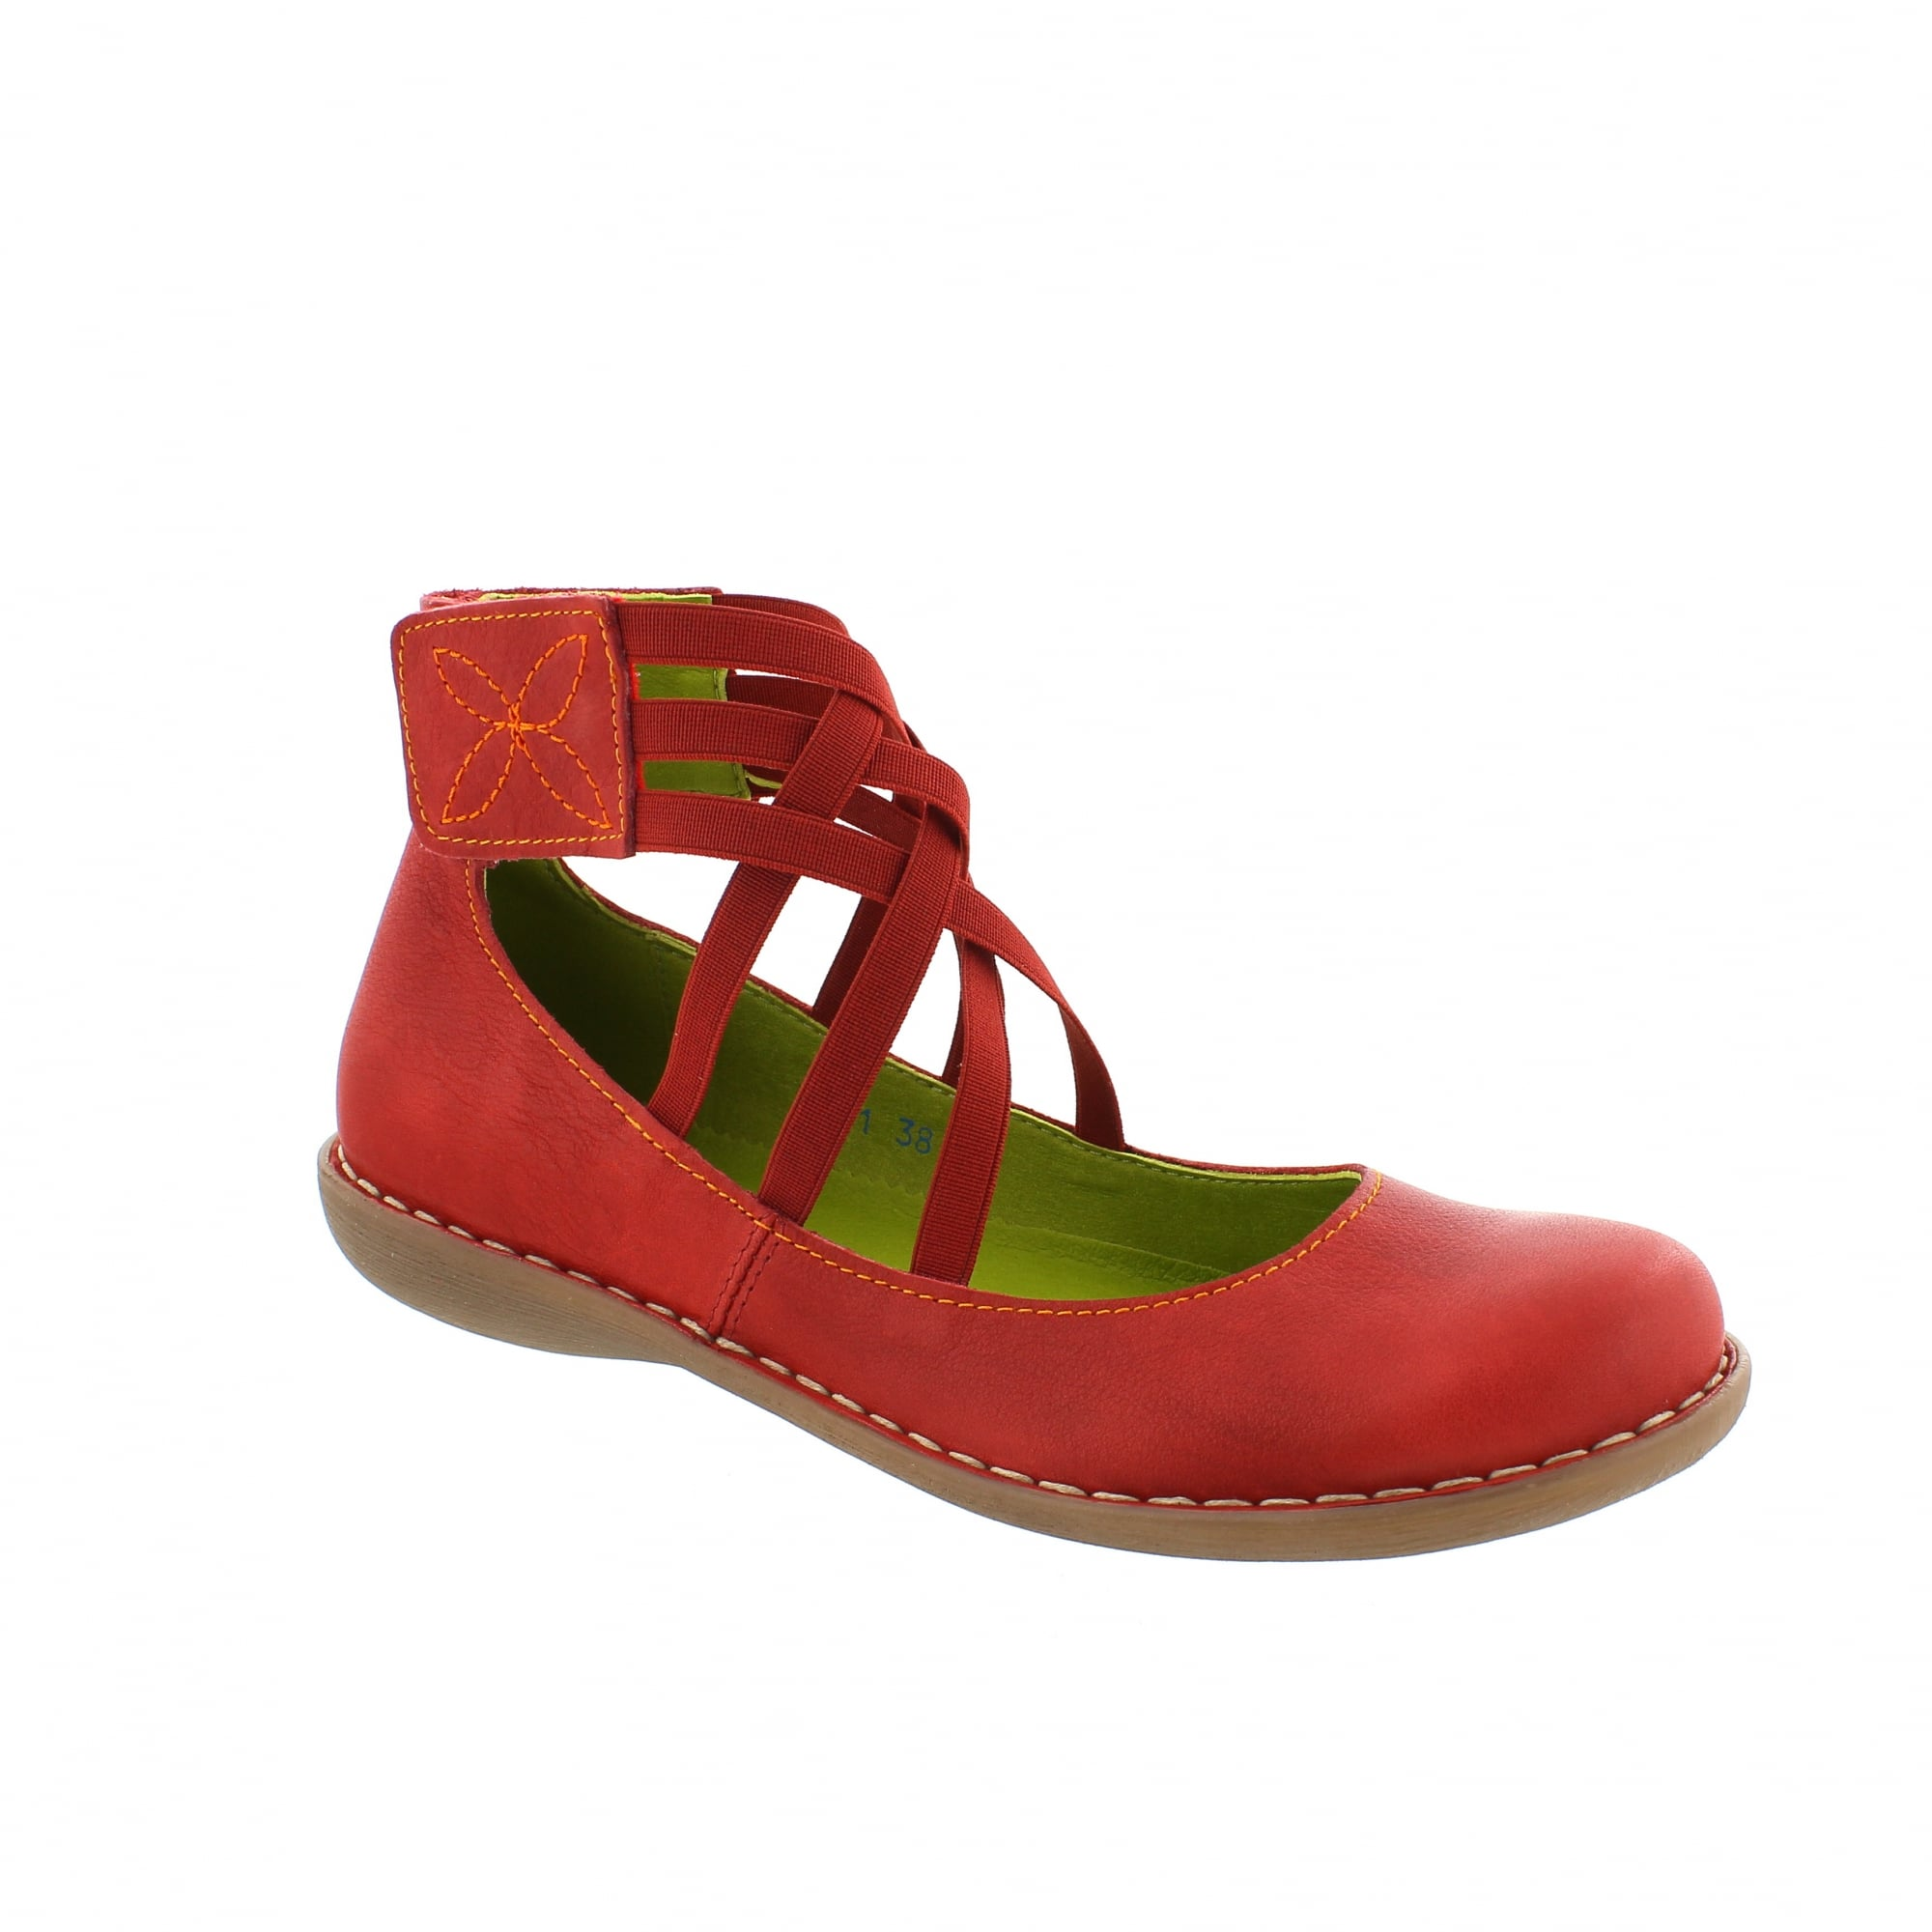 4447f2088ada4 Jungla 4851-v60 Red Leather Mary Jane Bar Shoes   Rogerson Shoes